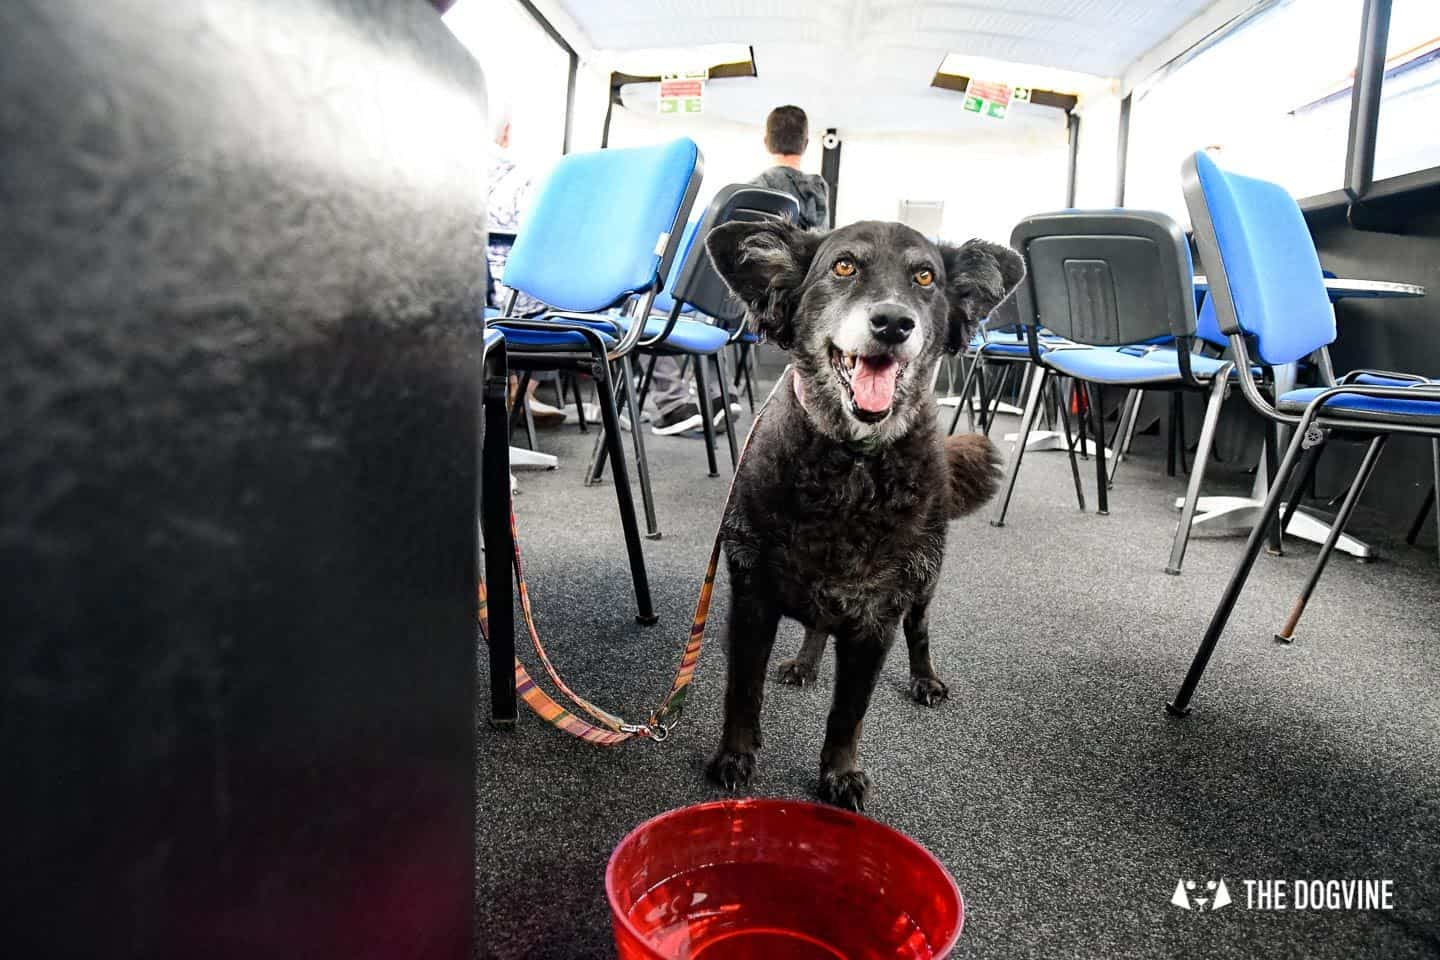 Queen Elizabeth Olympic Park Dog-friendly Boat Tours London - Lee and Stort 2